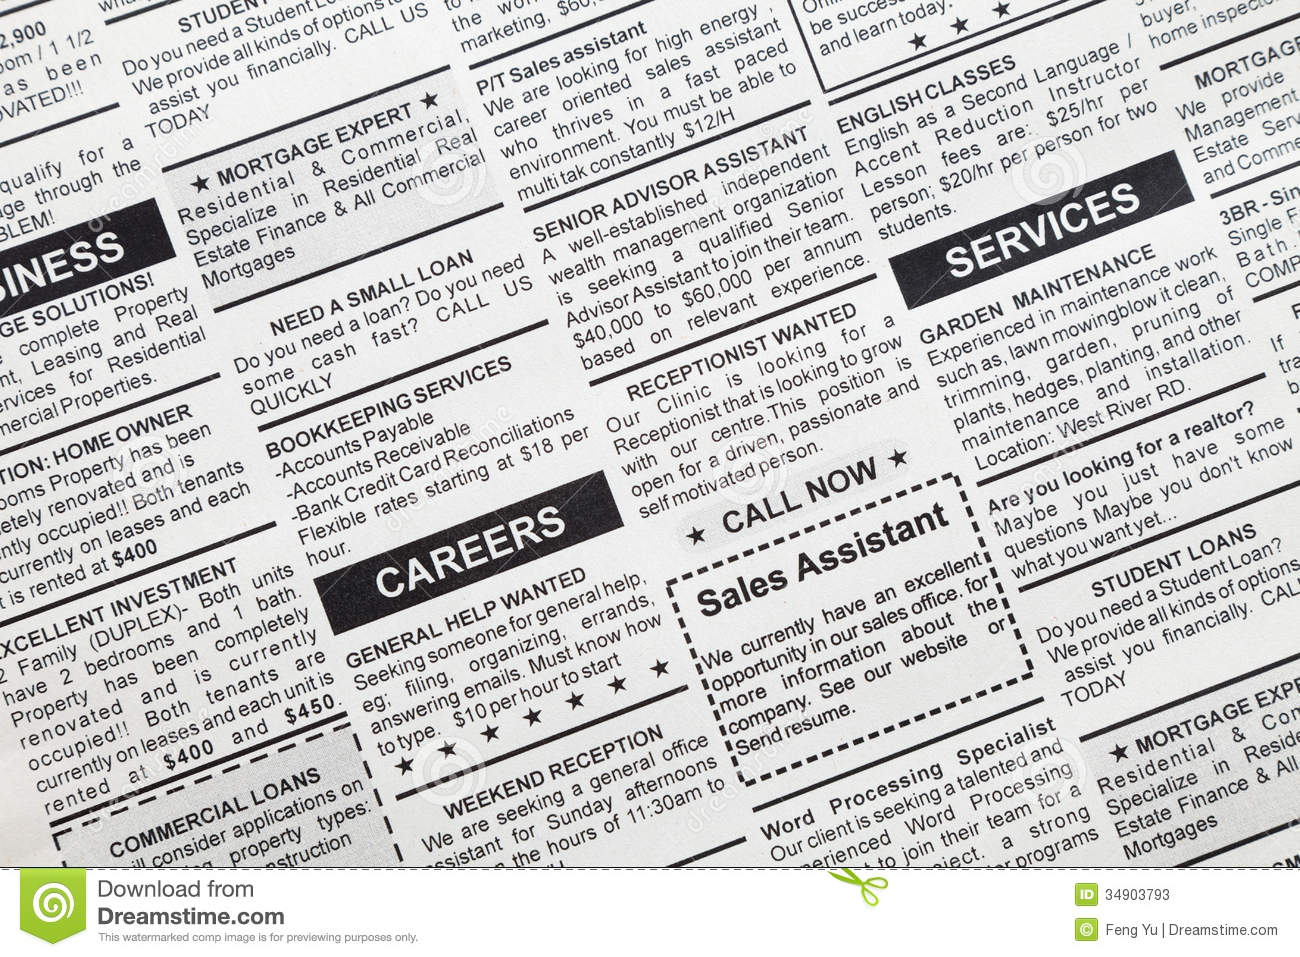 Classified Ad stock image. Image of fake, word, backgrounds.